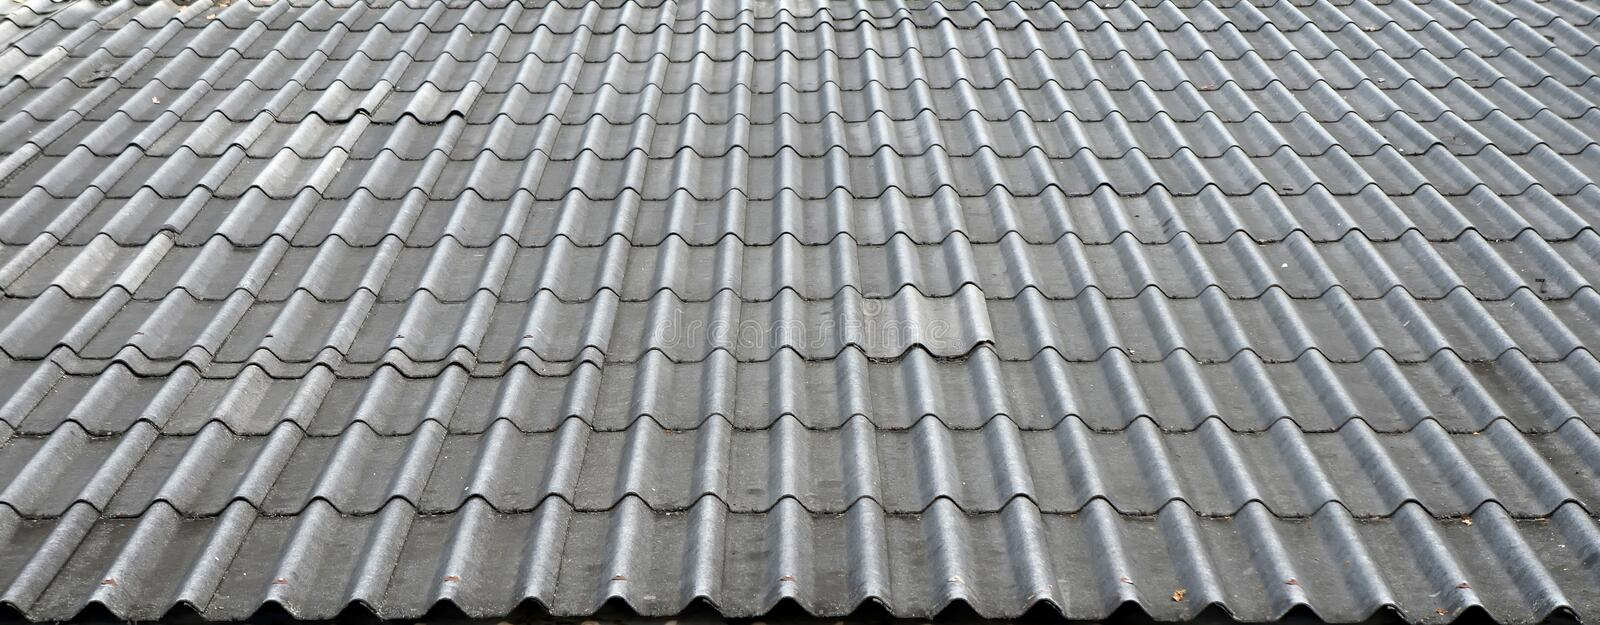 Black tiled roof royalty free stock image